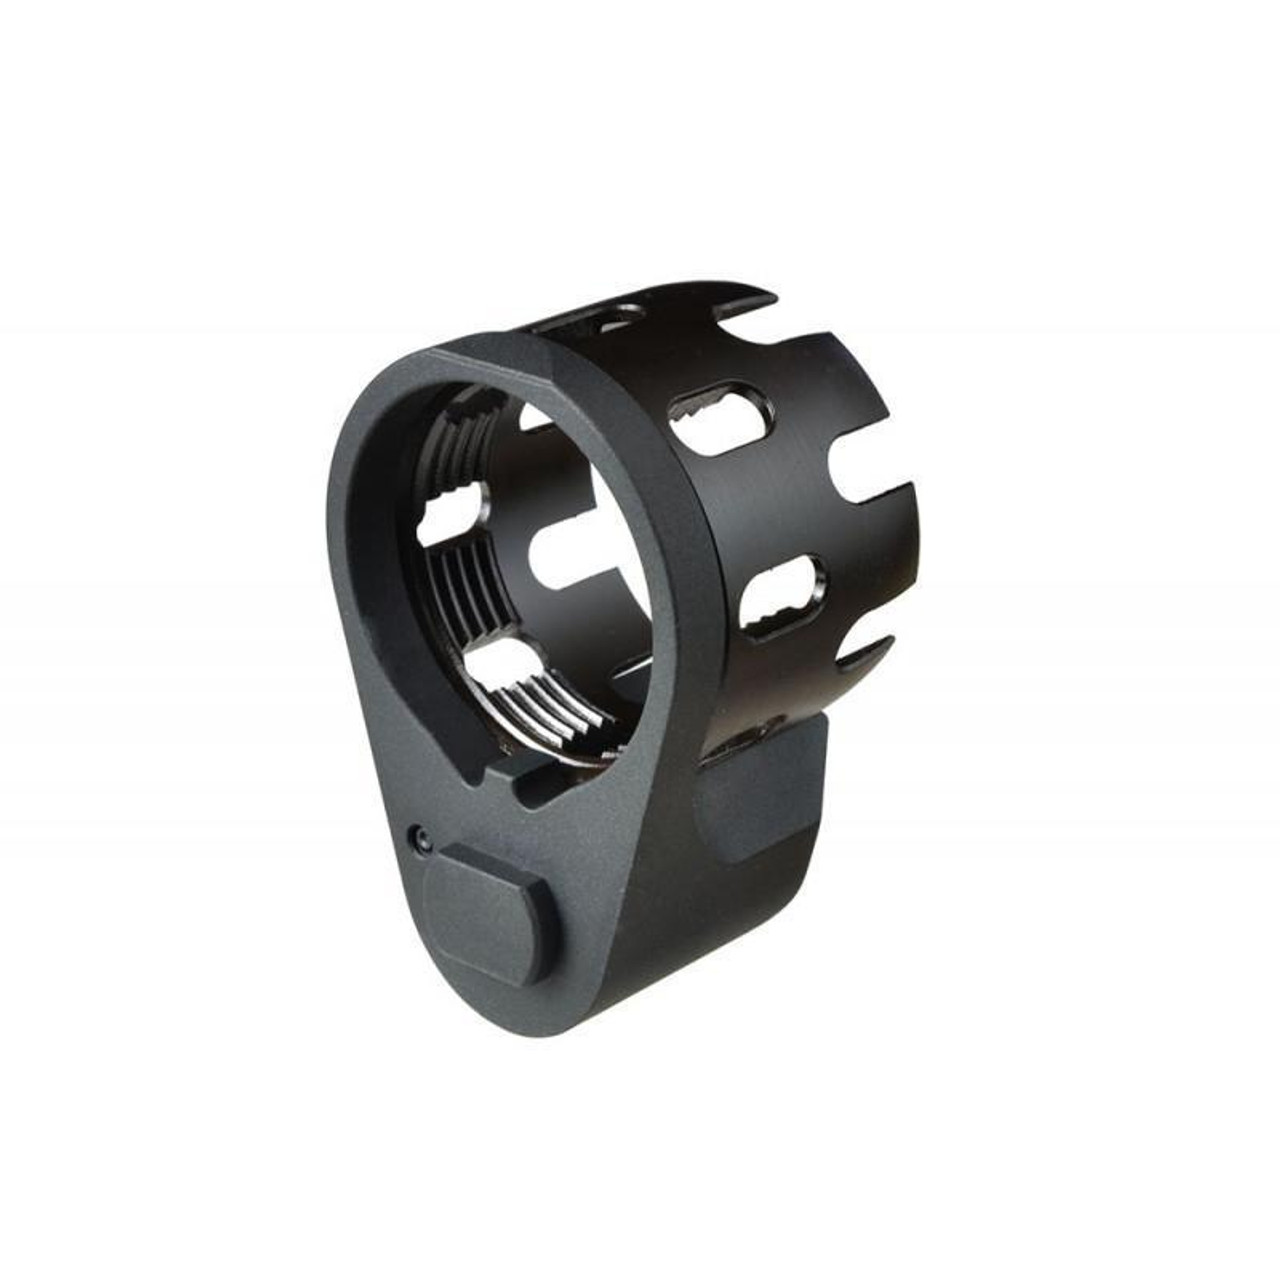 Black Label AR Enhanced Castle Nut & Extended End Plate in Black and stainless nut